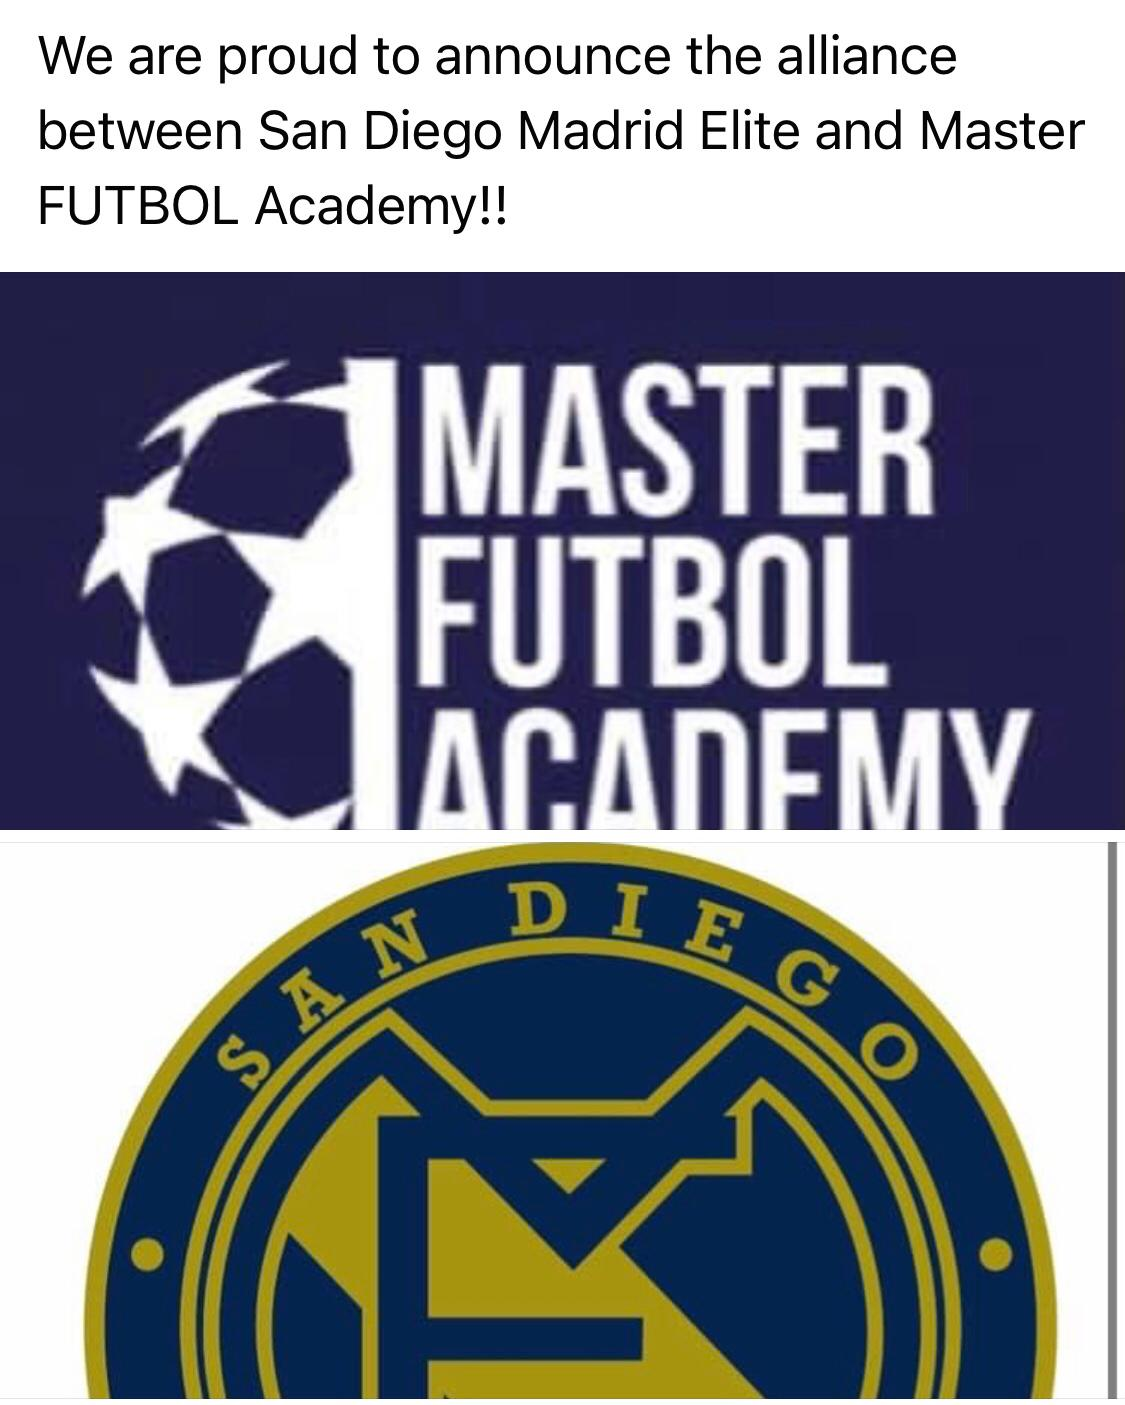 ALLIANCE BETWEEN SD MADRID ELITE AND MASTER FUTBOL ACADEMY